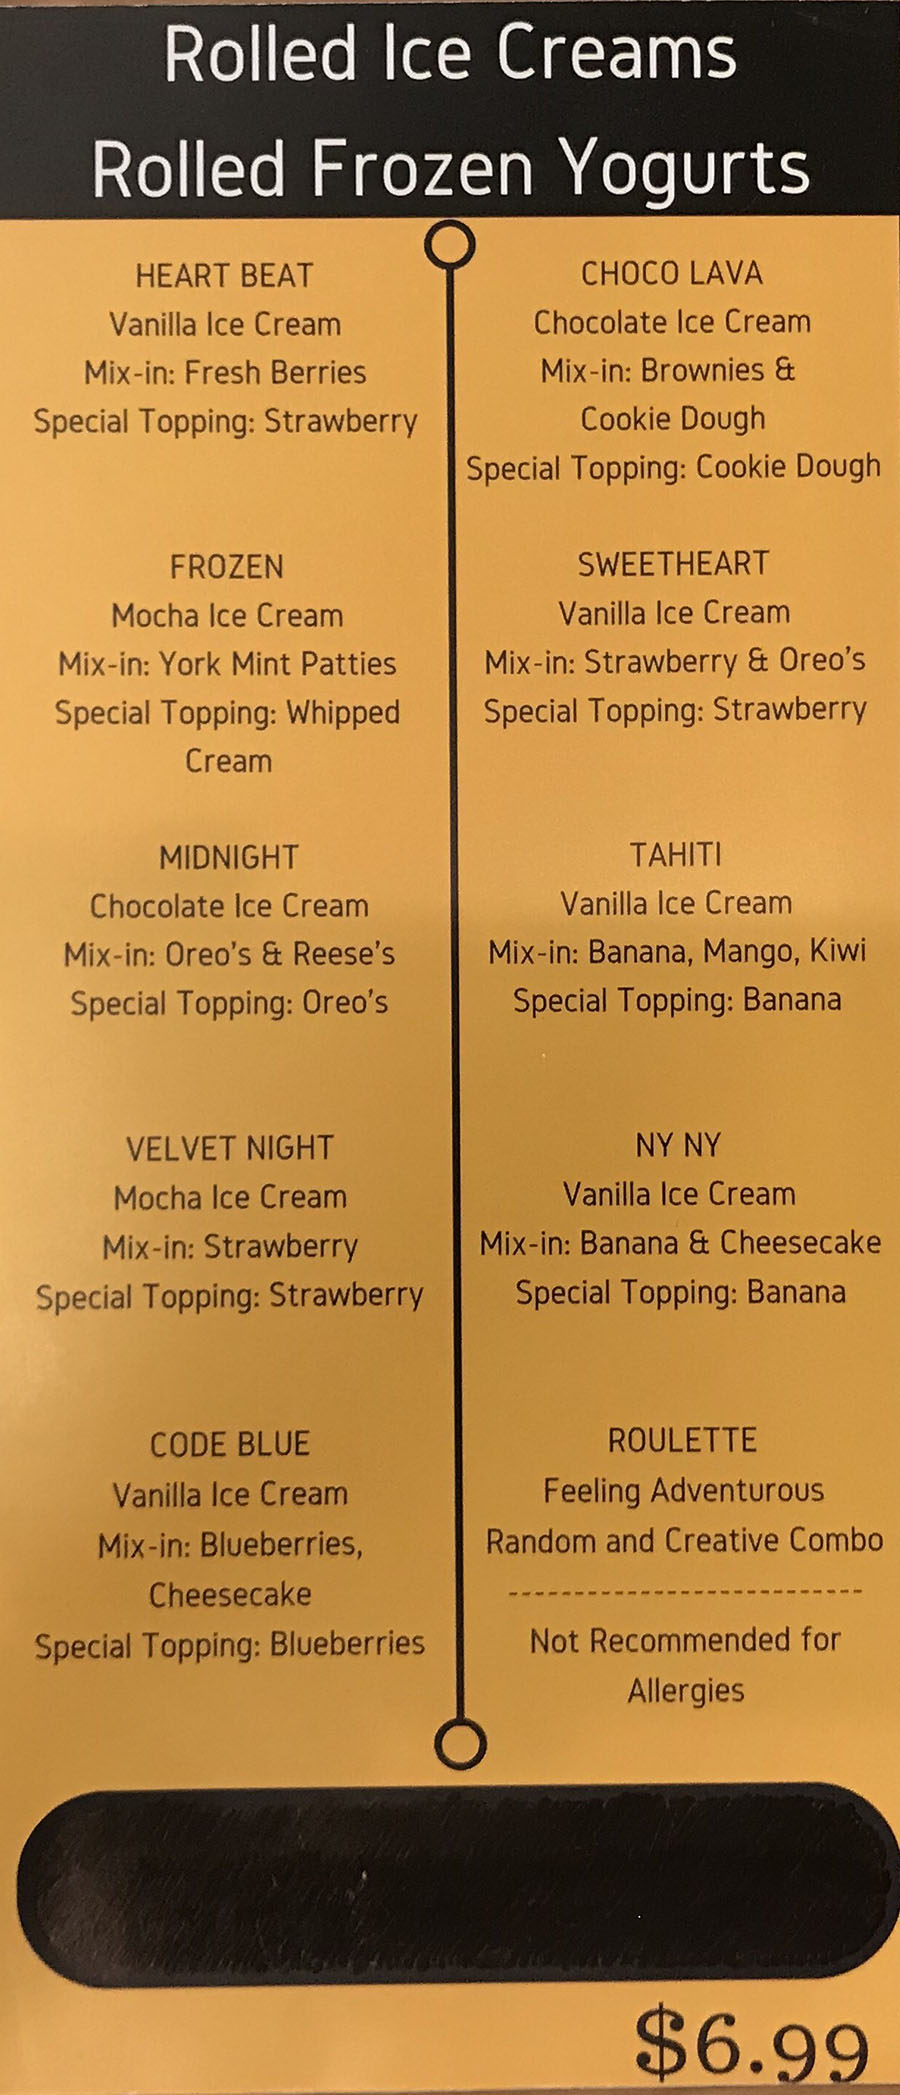 Doki Doki menu - rolled ice cream, rolled frozen yogurt